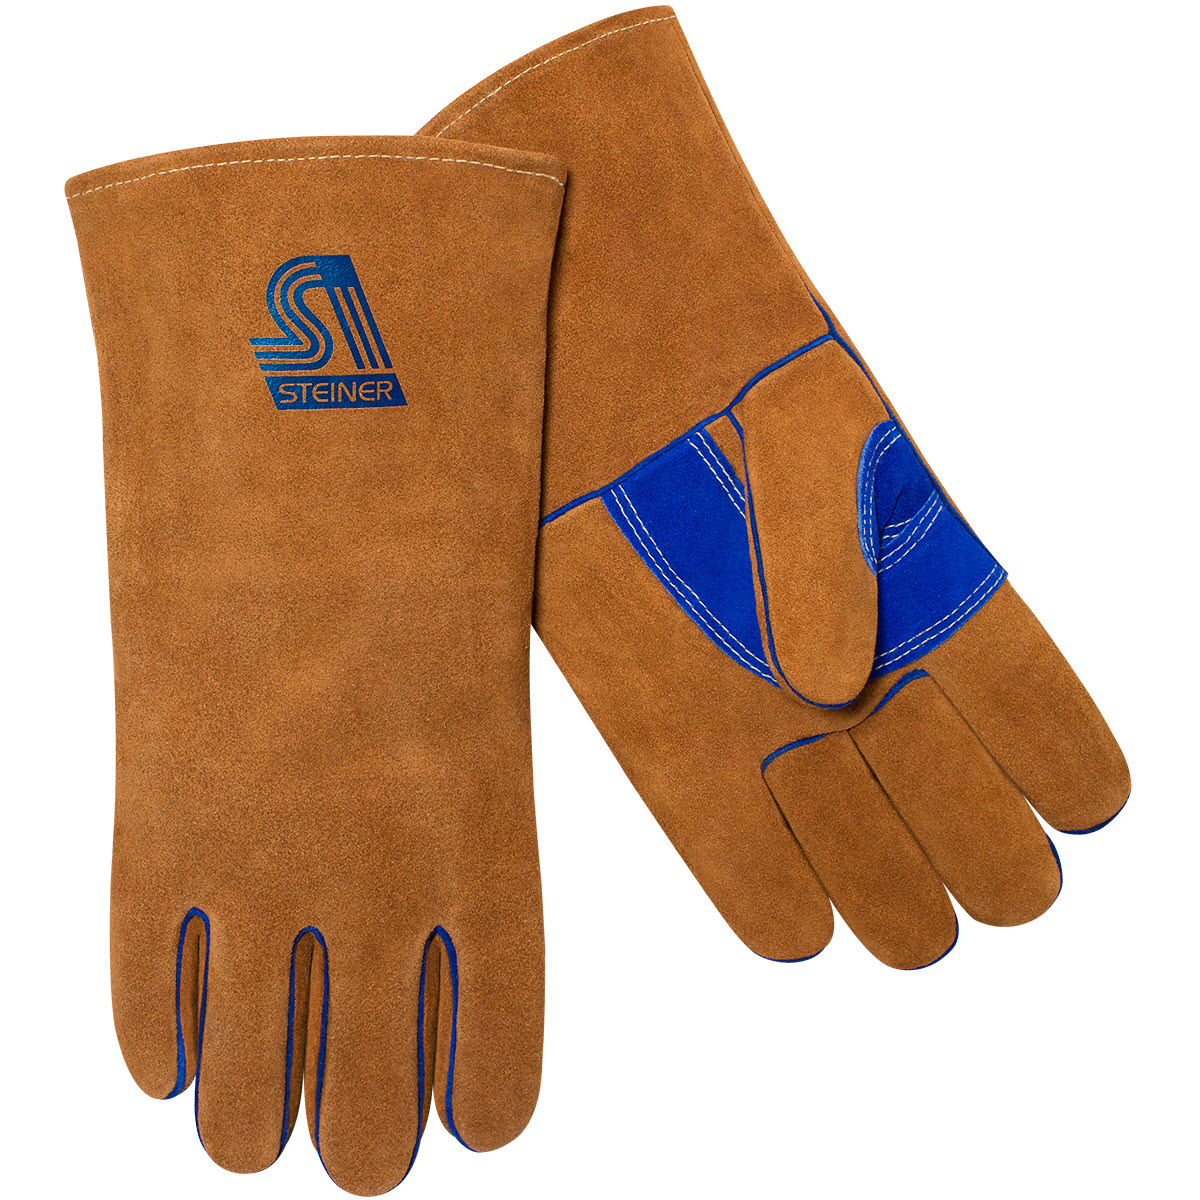 Steiner Industries 2119B-L Large Premium Side Split Cowhide Stick Welding Gloves ThermoCore Foam Lined